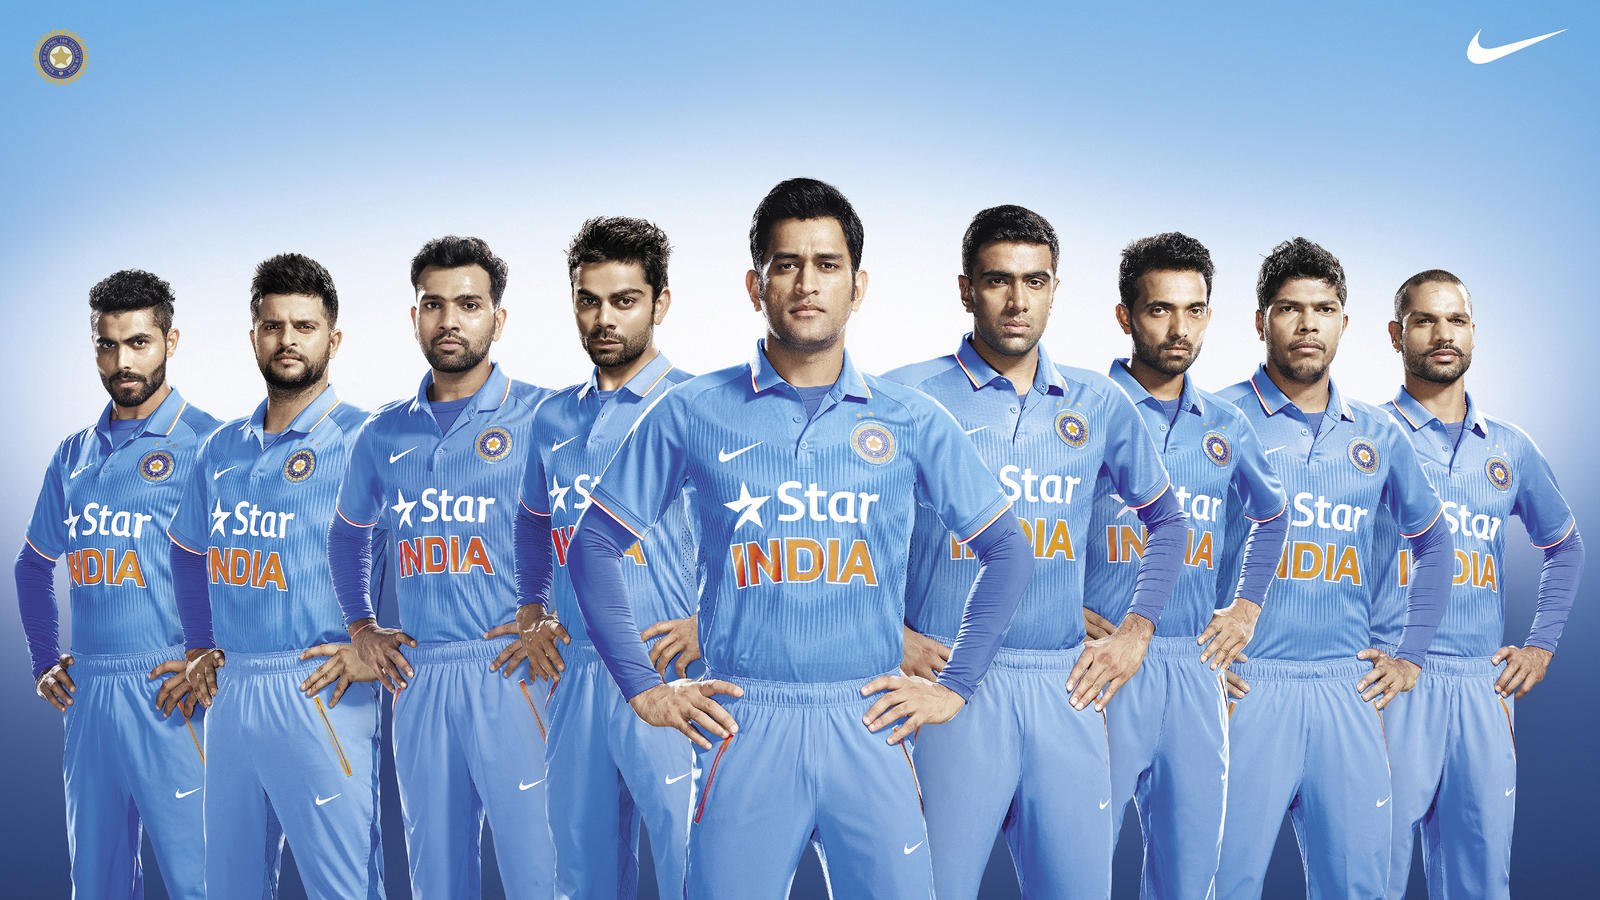 Team India Unveils Nike S New Cricket Kit For One Day Internationals